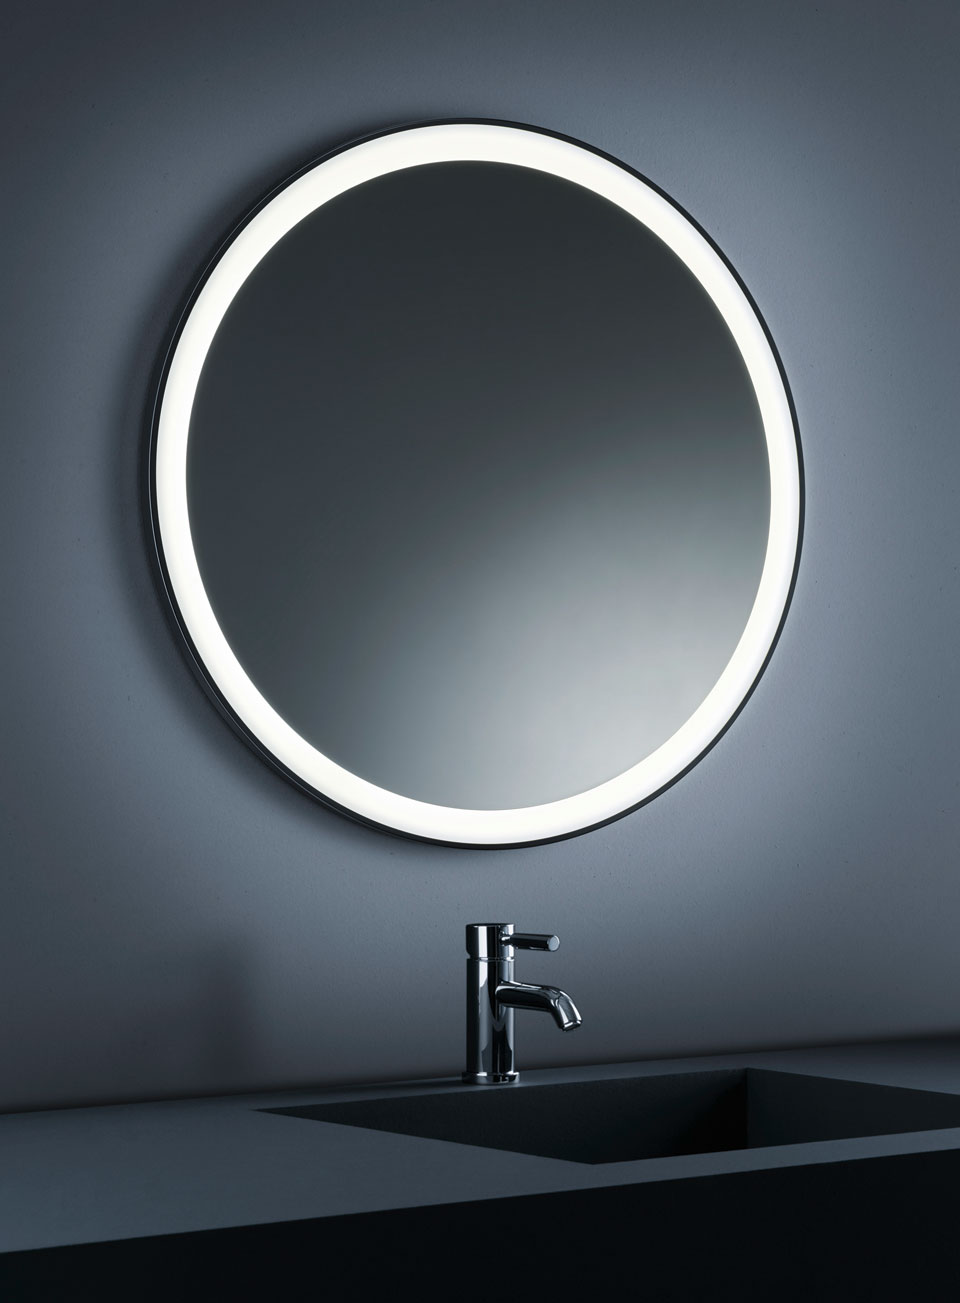 miroir lumineux de salle de bains rond inox poli. Black Bedroom Furniture Sets. Home Design Ideas